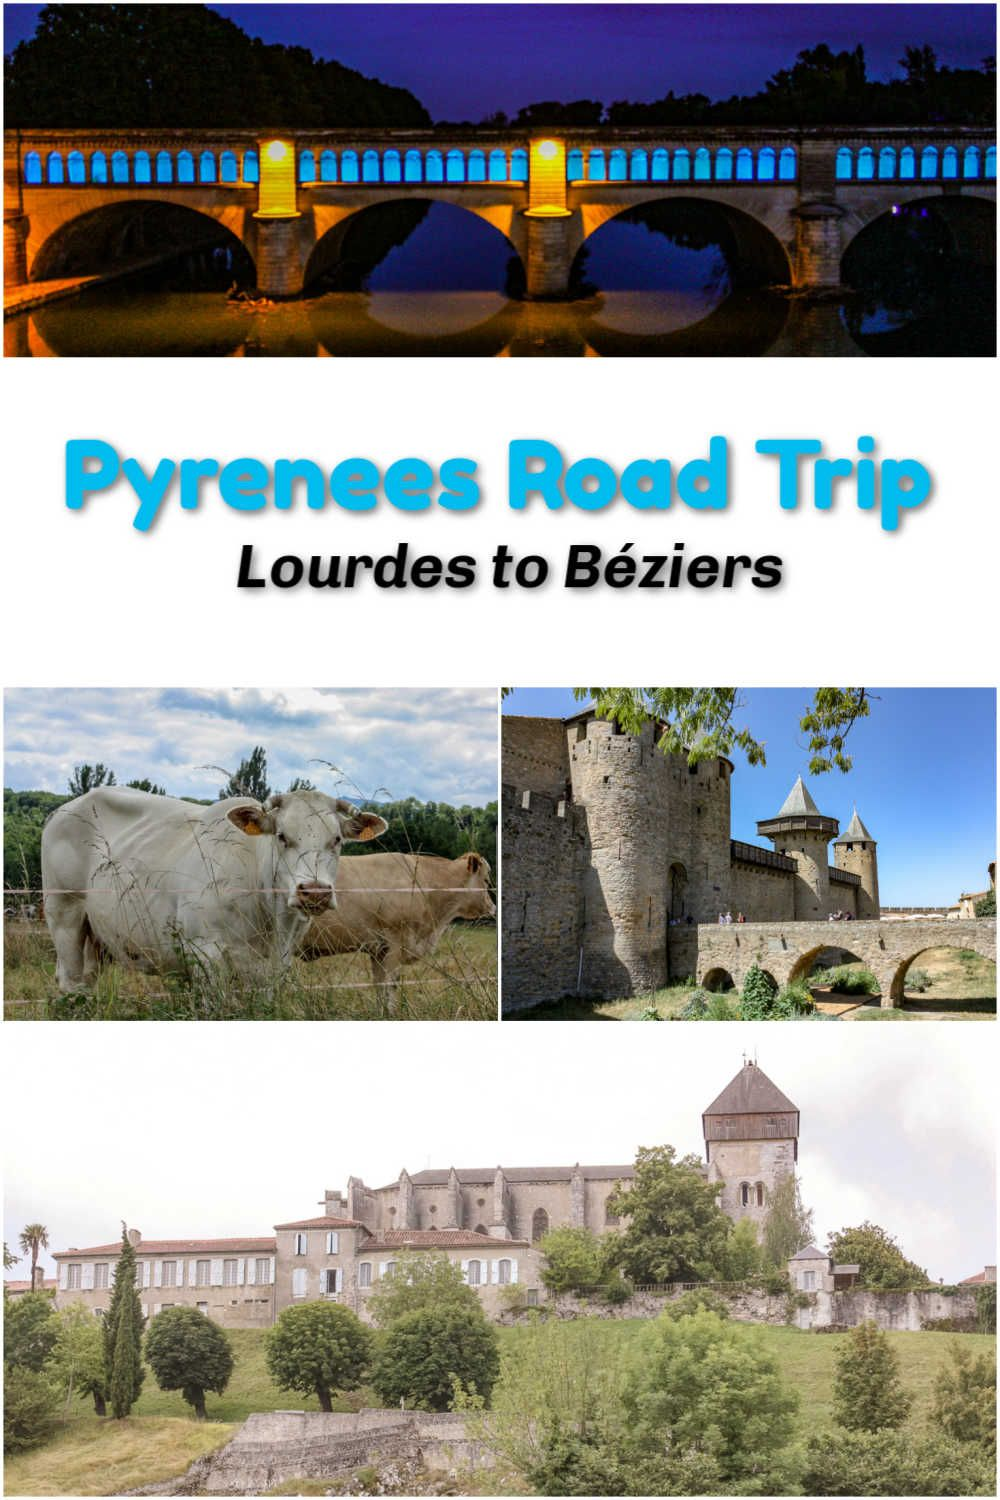 In And Out Beziers pyrenees road trip: quaint towns lourdes to béziers | road